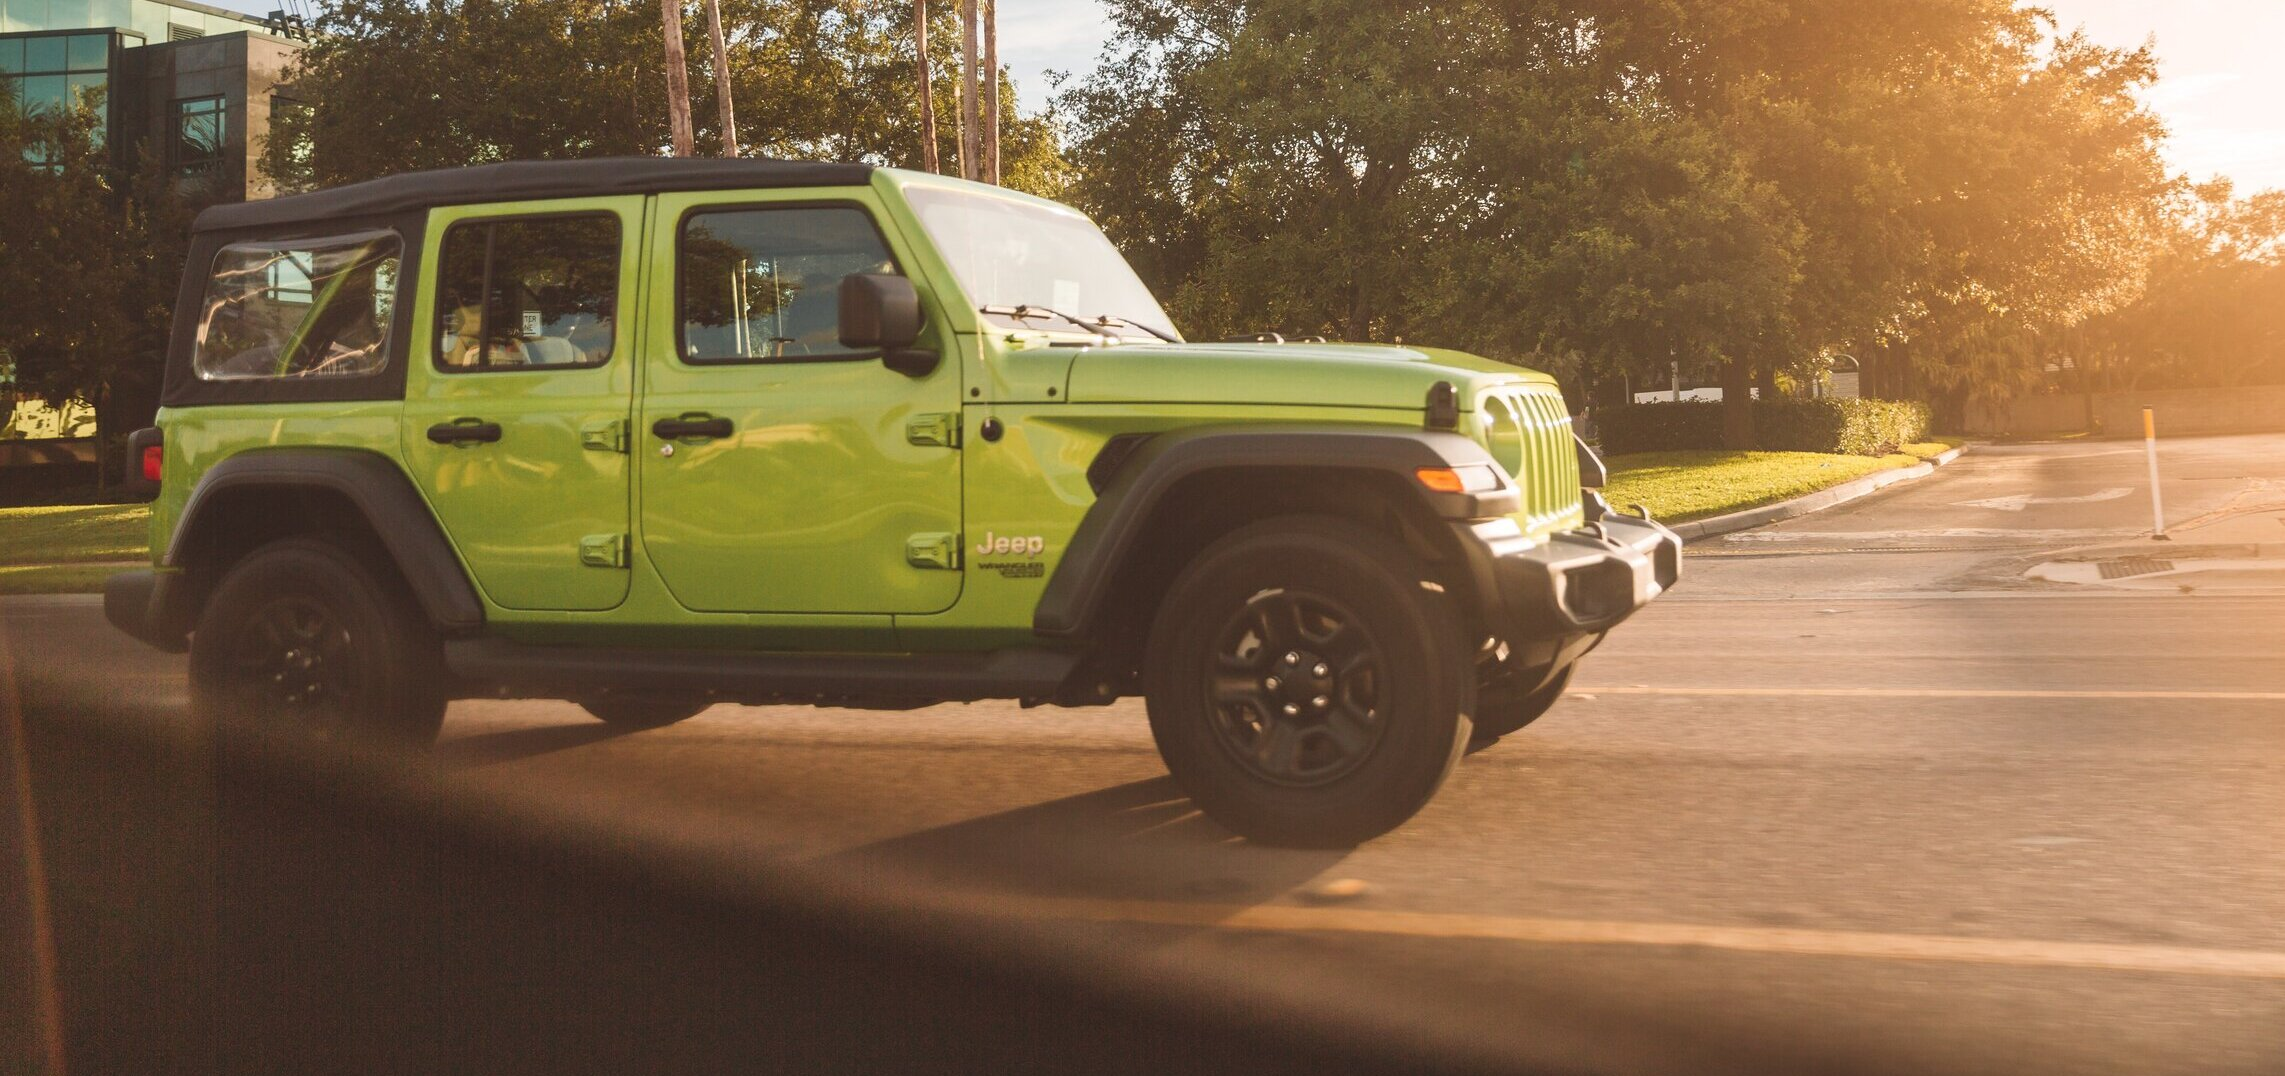 green Jeep in parking lot